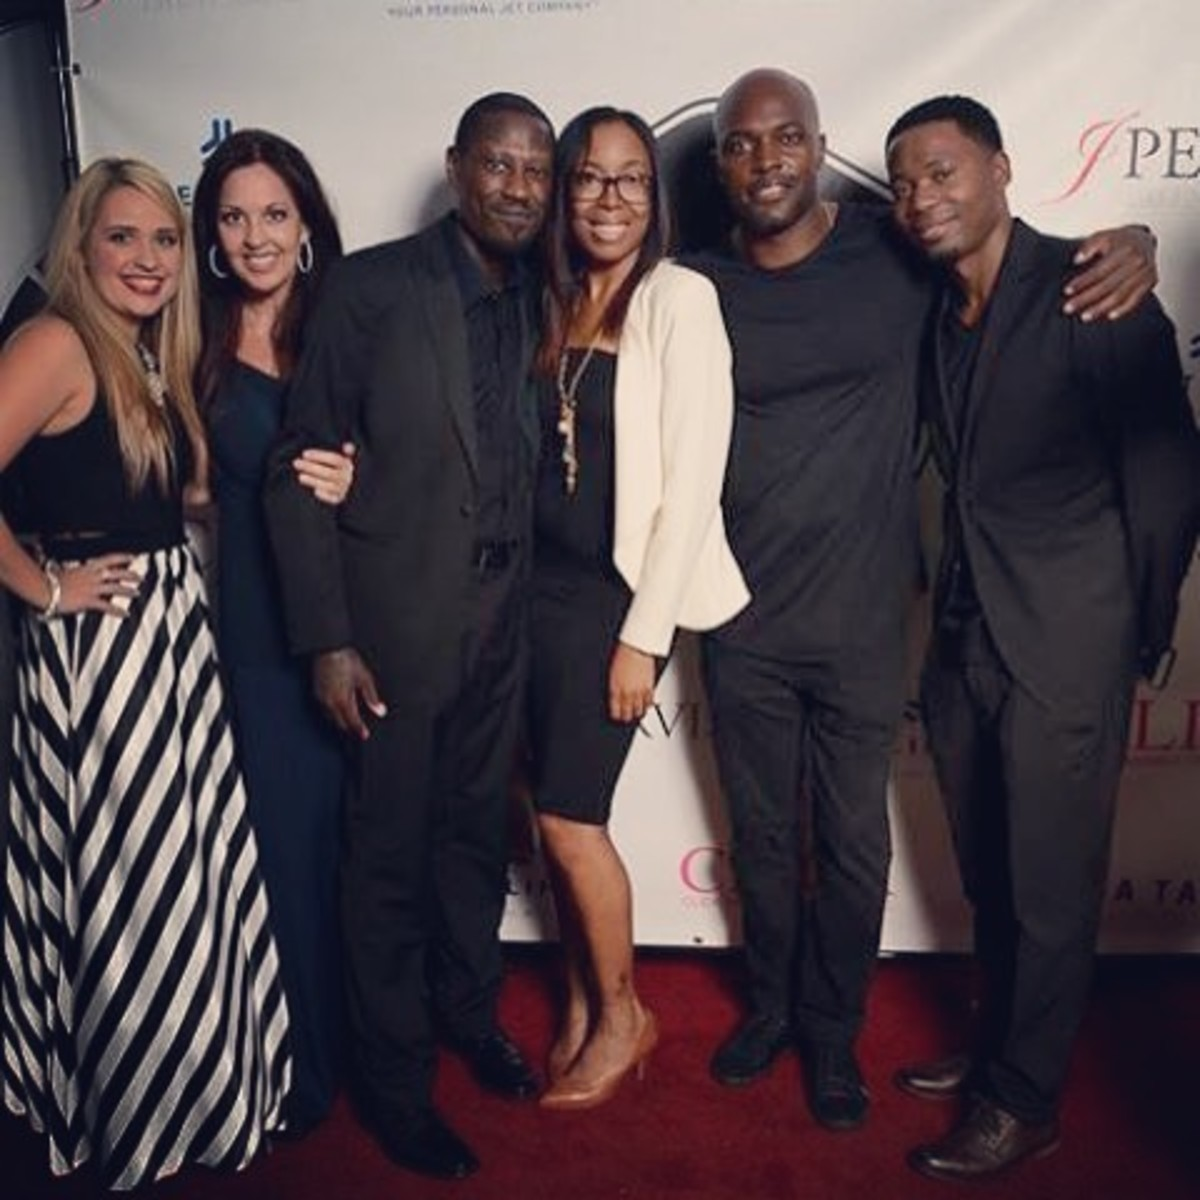 (L to R) Jayme Pervis, Joy Pervis, Christopher Young, LaQuanda Plantt (of  ElleQ Casting), Mel Chude, one the actors on the J Pervis talent roster who was a featured actor in 'Magic Mike XXL'  and a new show coming to TV called 'Shots Fired', and Tay